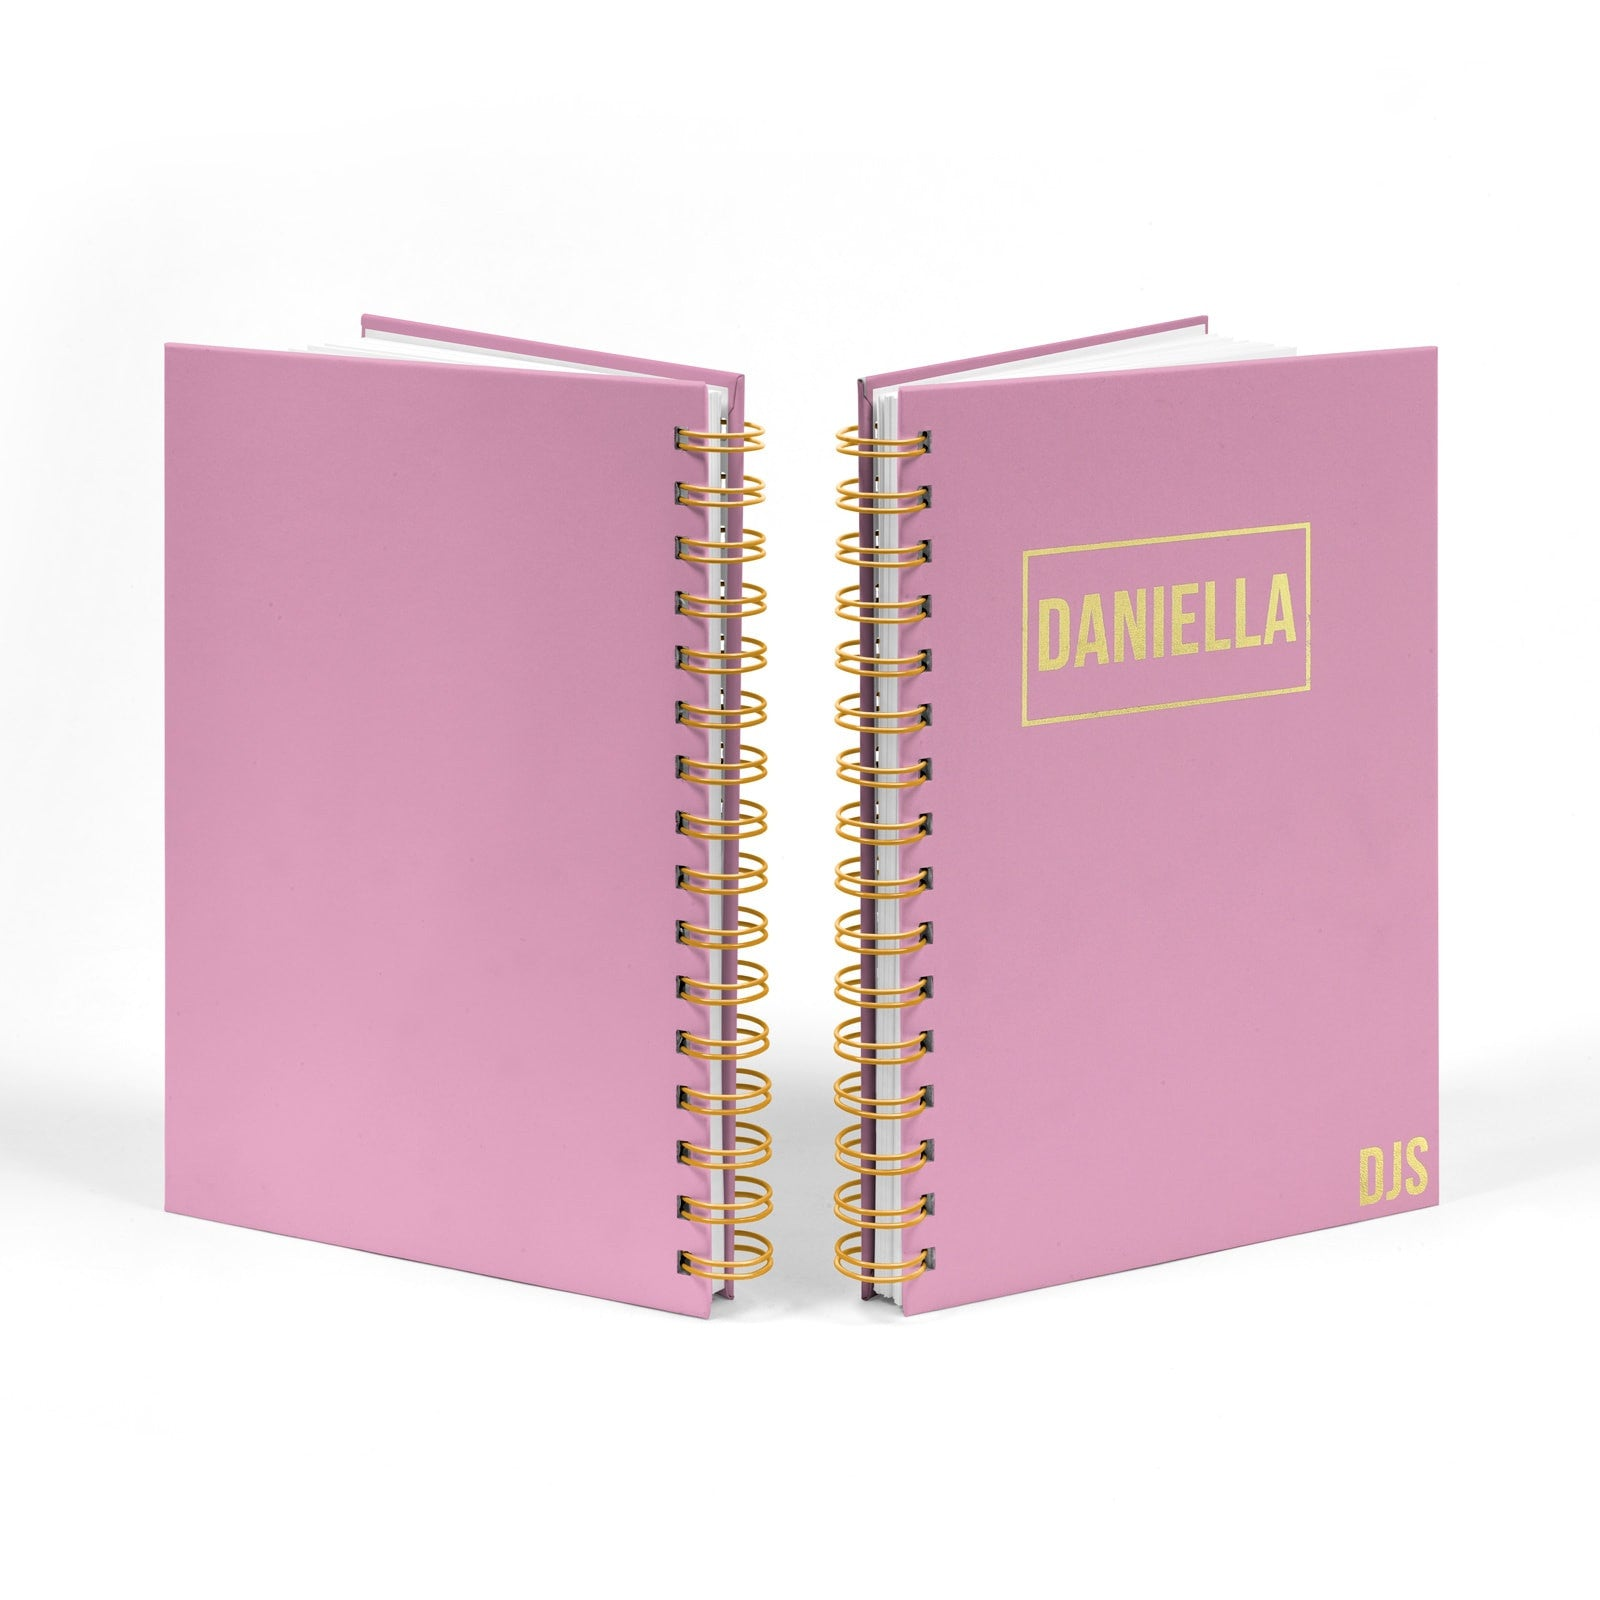 Personalised Gold Foil Notebook with Name & Initials Front and Back